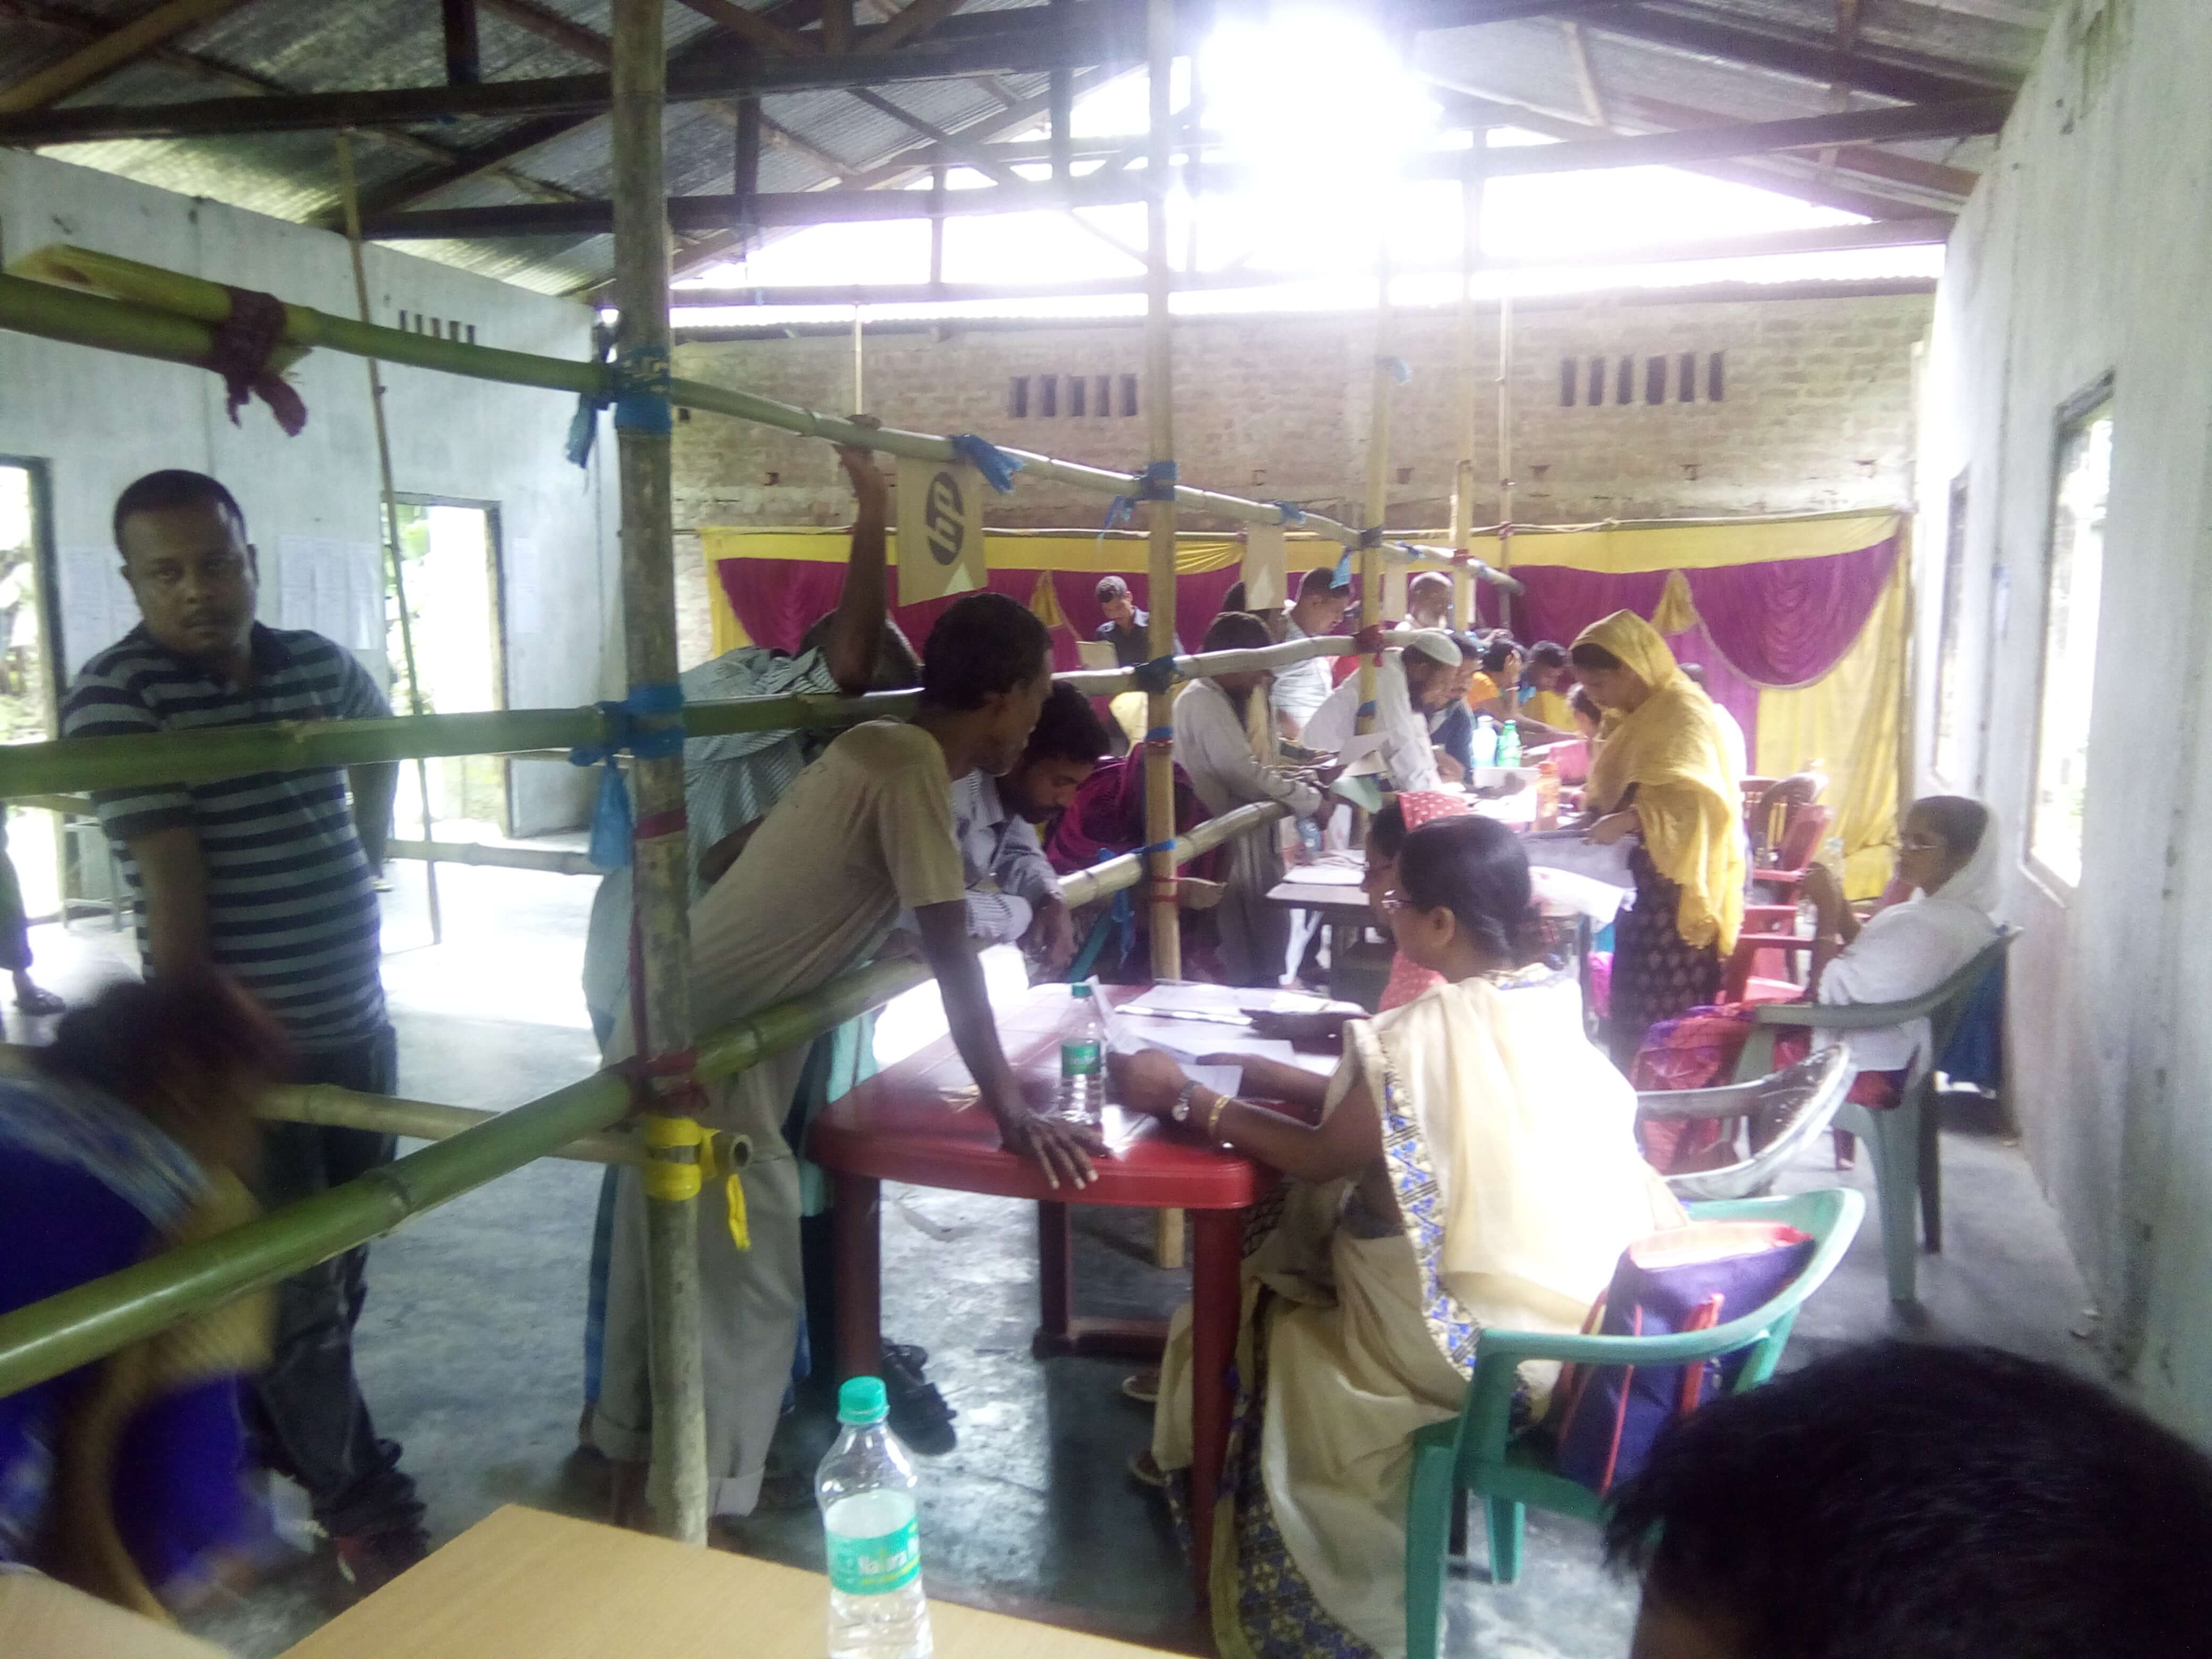 Lakhimpur District of Assam Witnesses Peaceful Situation after the Final Draft Publication of National Register of Citizens on Monday